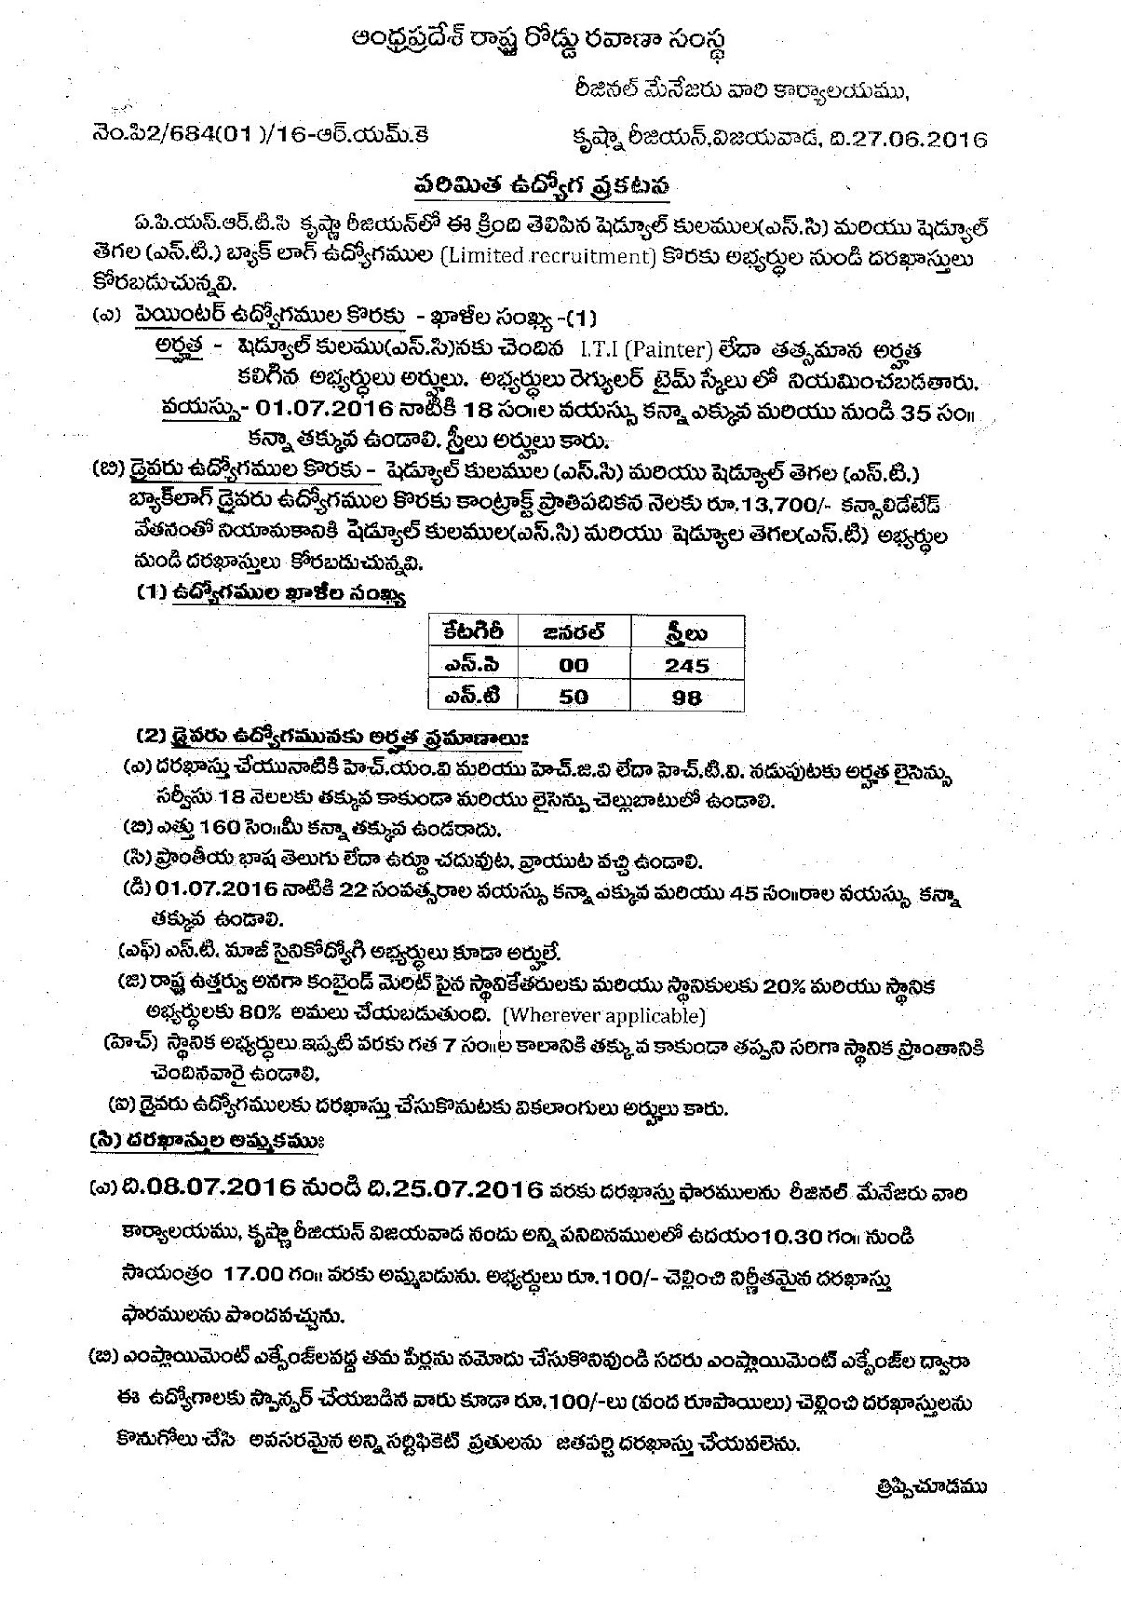 Krishna Dist APSRTC SC/ ST Backlog Vacancies Recruitment 2016 - 393 Driver Posts   APSRTC Regional Manager invites applications from SC/ ST candidates for the recruitment 393 Driver Krishna District Driver Conductor posts education Qualification age limit required certificated documents salary application fee complete guidelines how to apply for apsrtc sc st backlog posts in online instruction